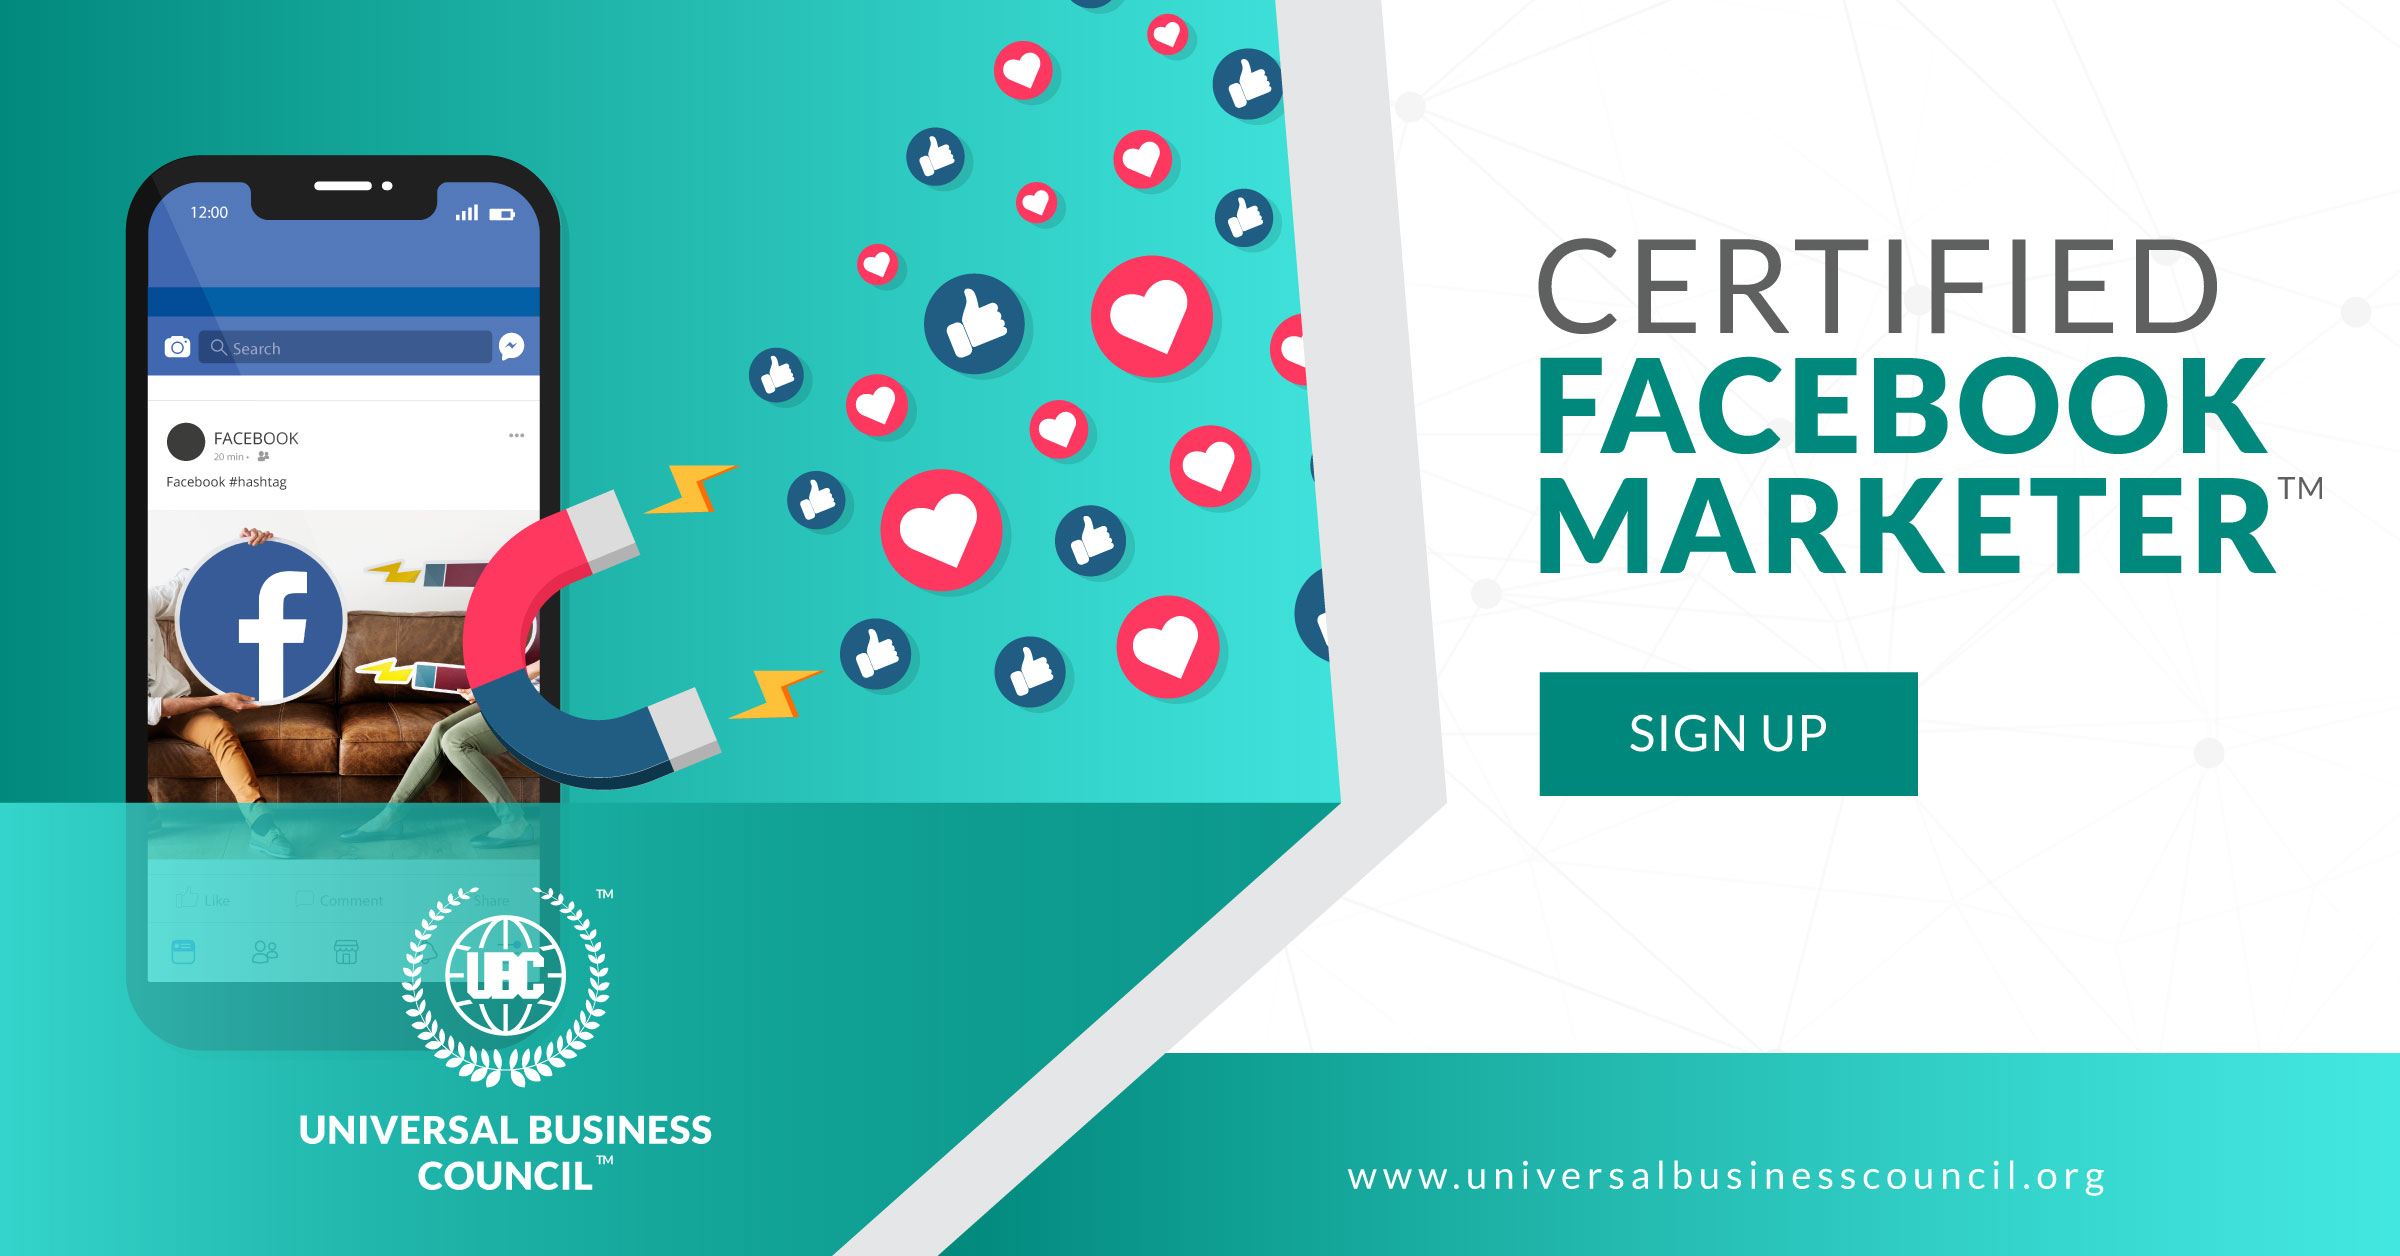 Certified-Facebook-Marketer